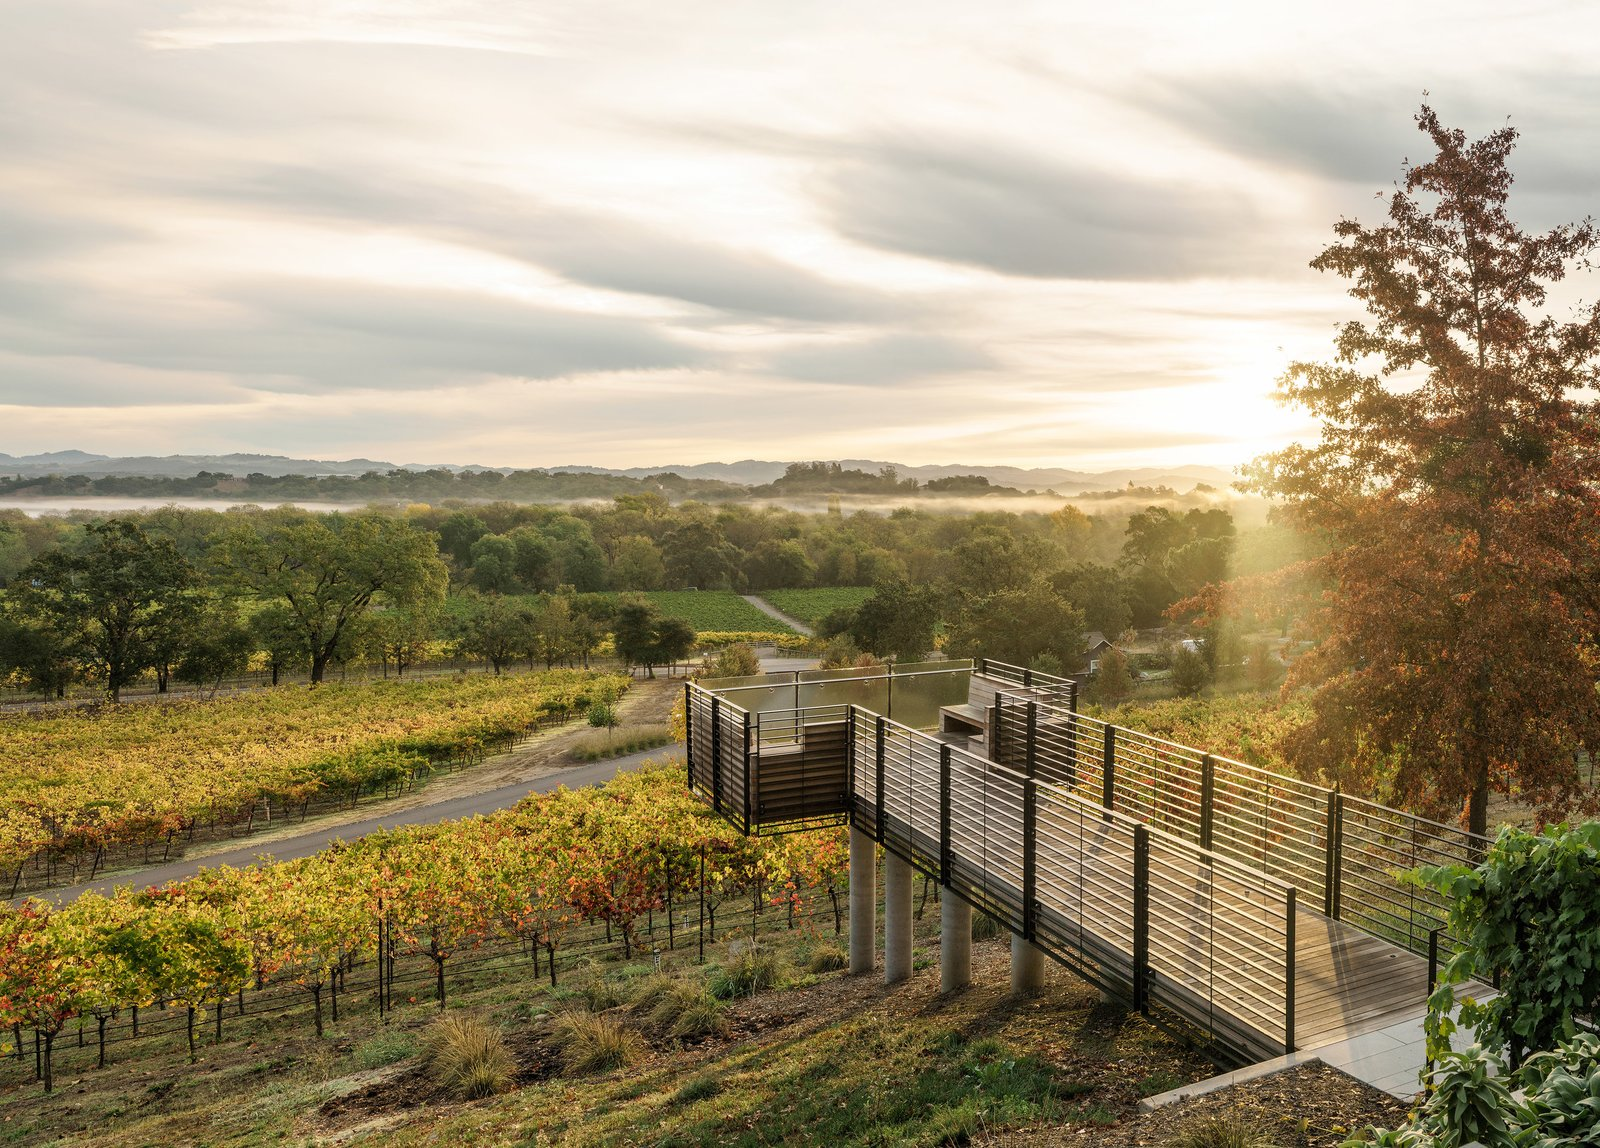 Spectacular belvedere overlook to experience the vineyards